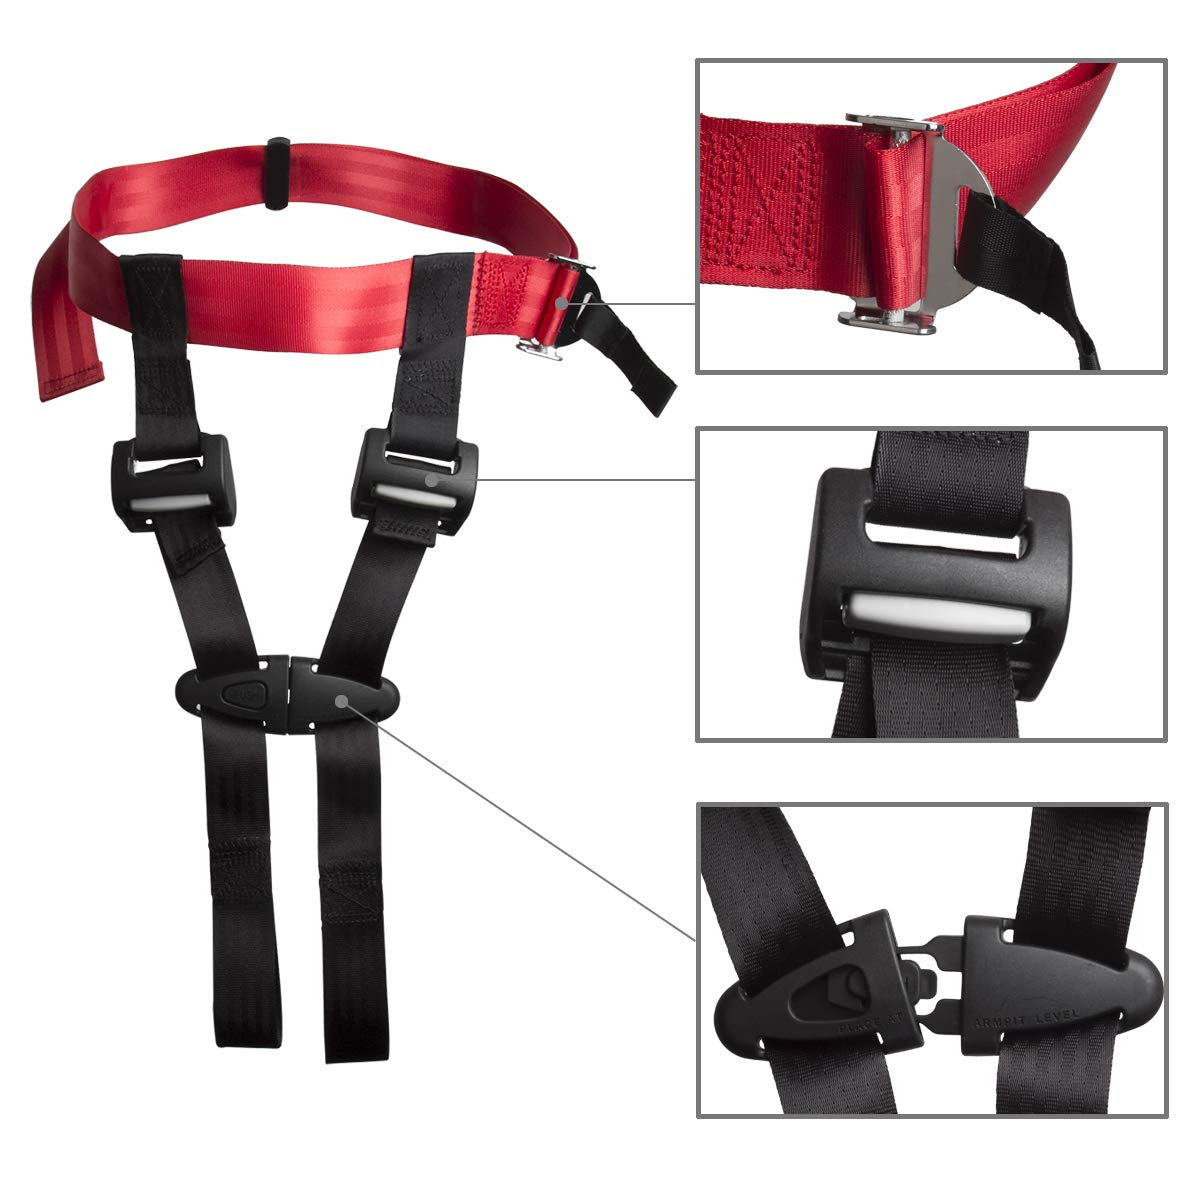 Child Safety Harness Airplane Travel Clip Strap,Care Harness Restraint System-Approved by FAA,Protect Your Child for Airplane Travel Safety